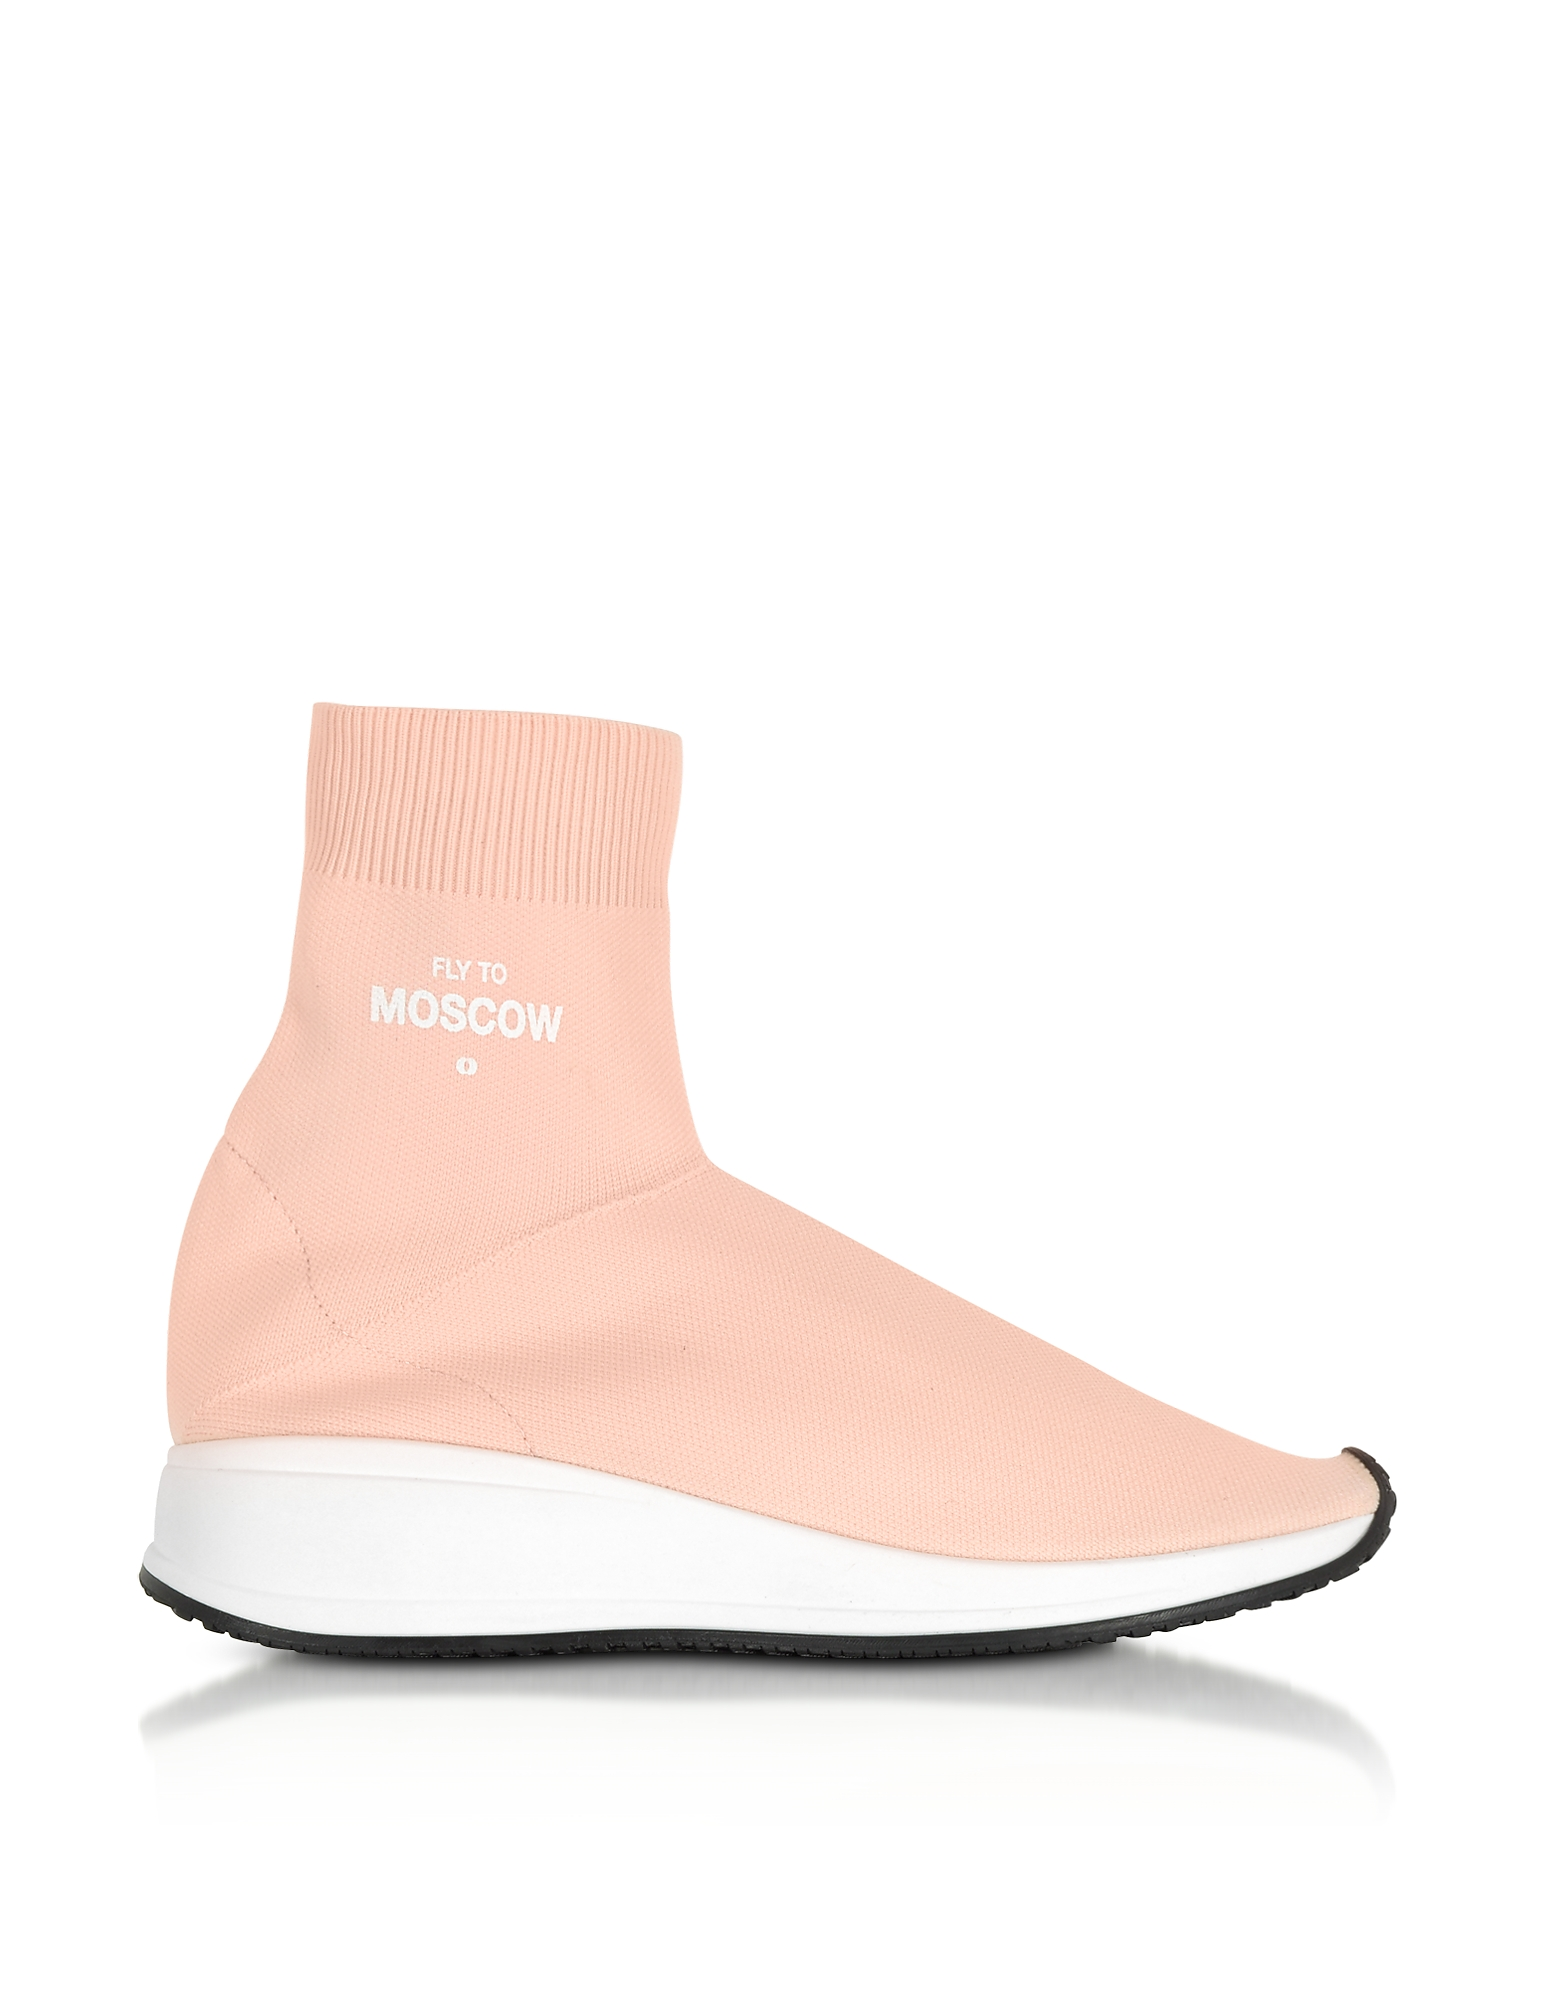 Joshua Sanders Shoes, Fly To Moscow Pink Nylon Sock Unisex Sneakers